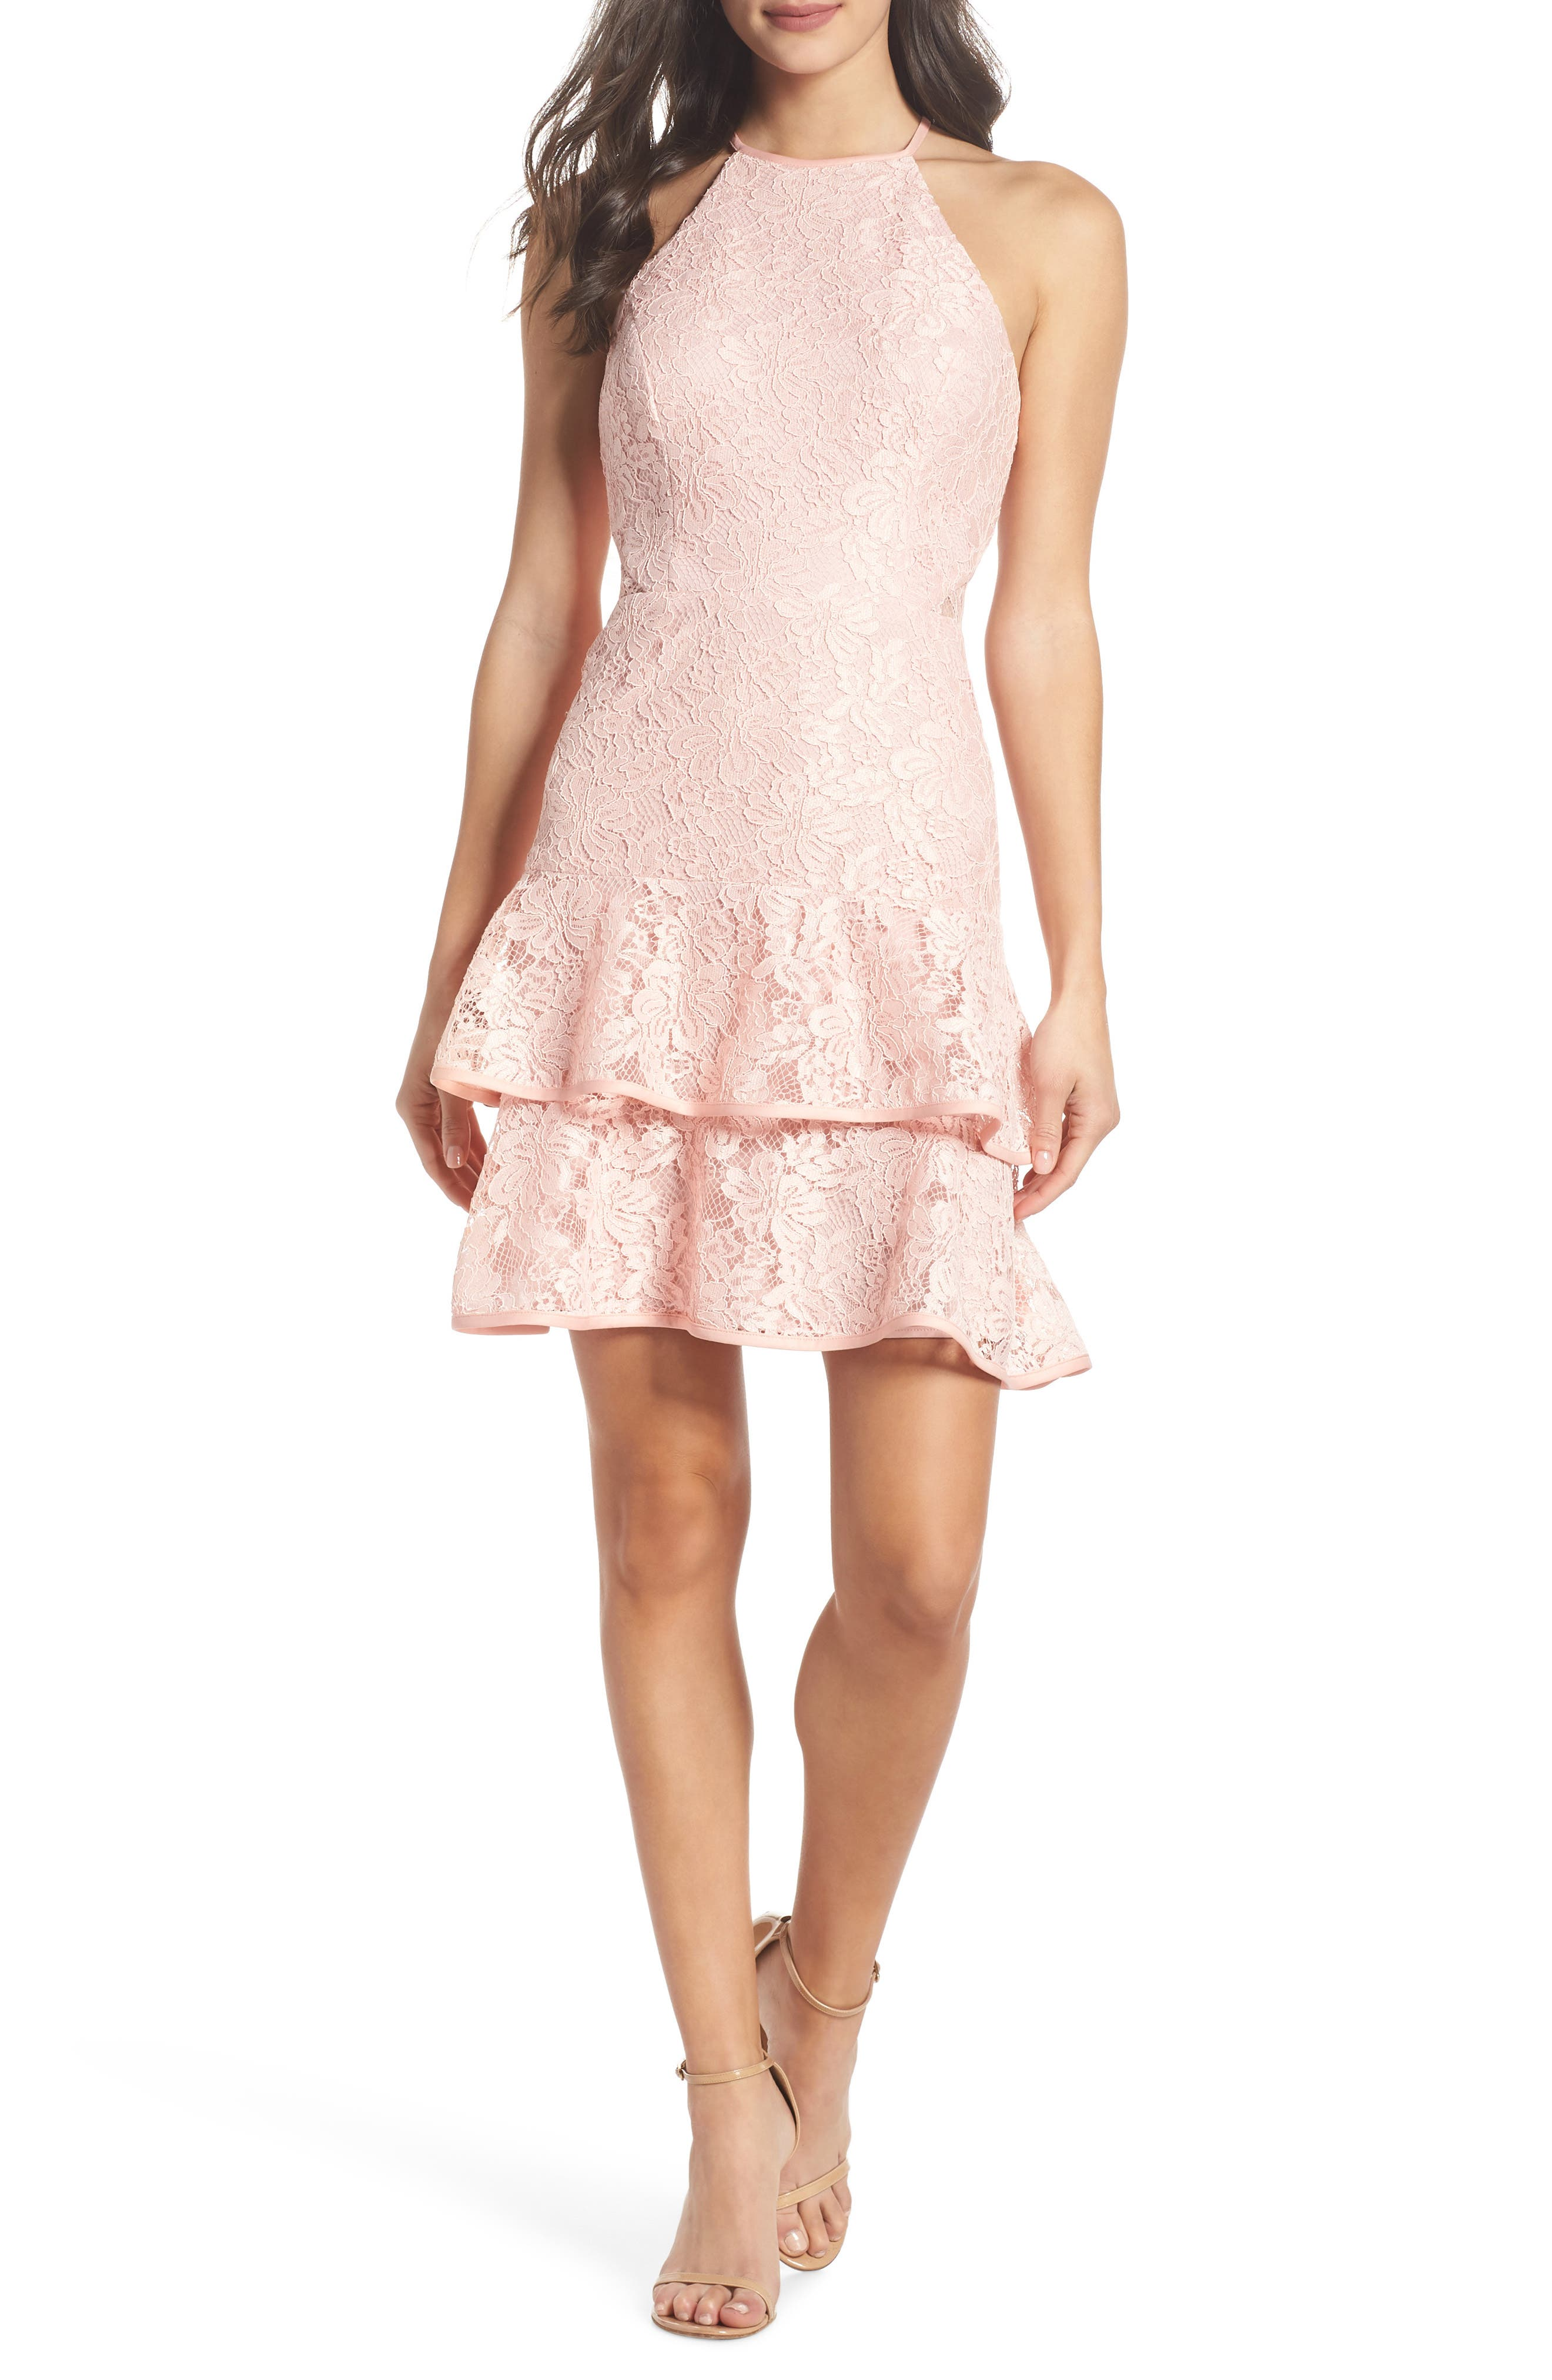 Ruffle Tier Lace Party Dress,                         Main,                         color, 680